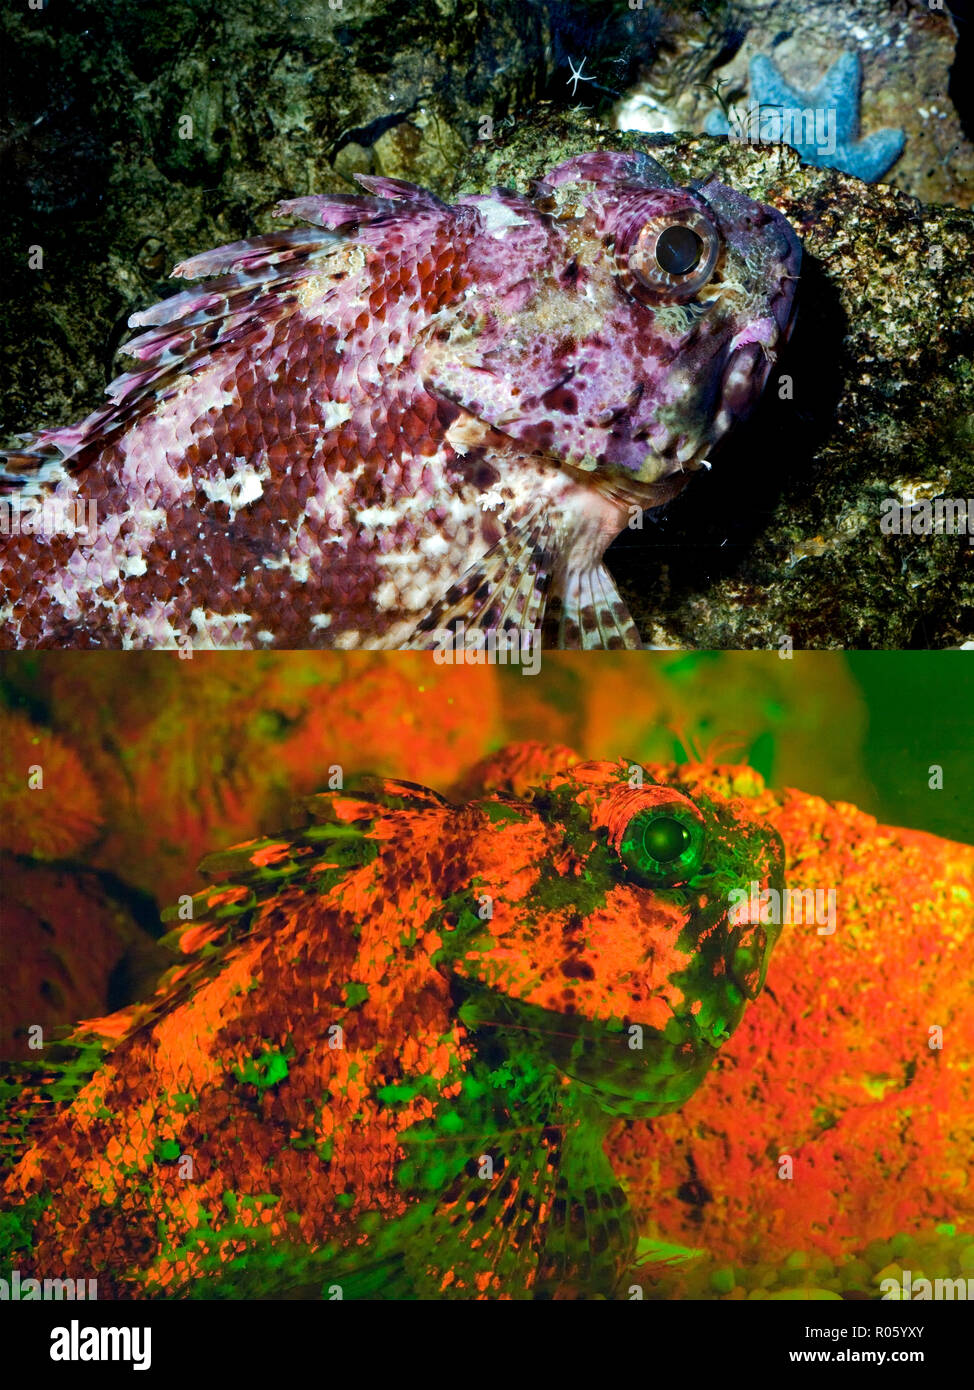 Bigscale scorpionfish, Scorpaena scrofa. Above photographed with daylight and bellow showing fluorescent colours photographed under special blue or - Stock Image